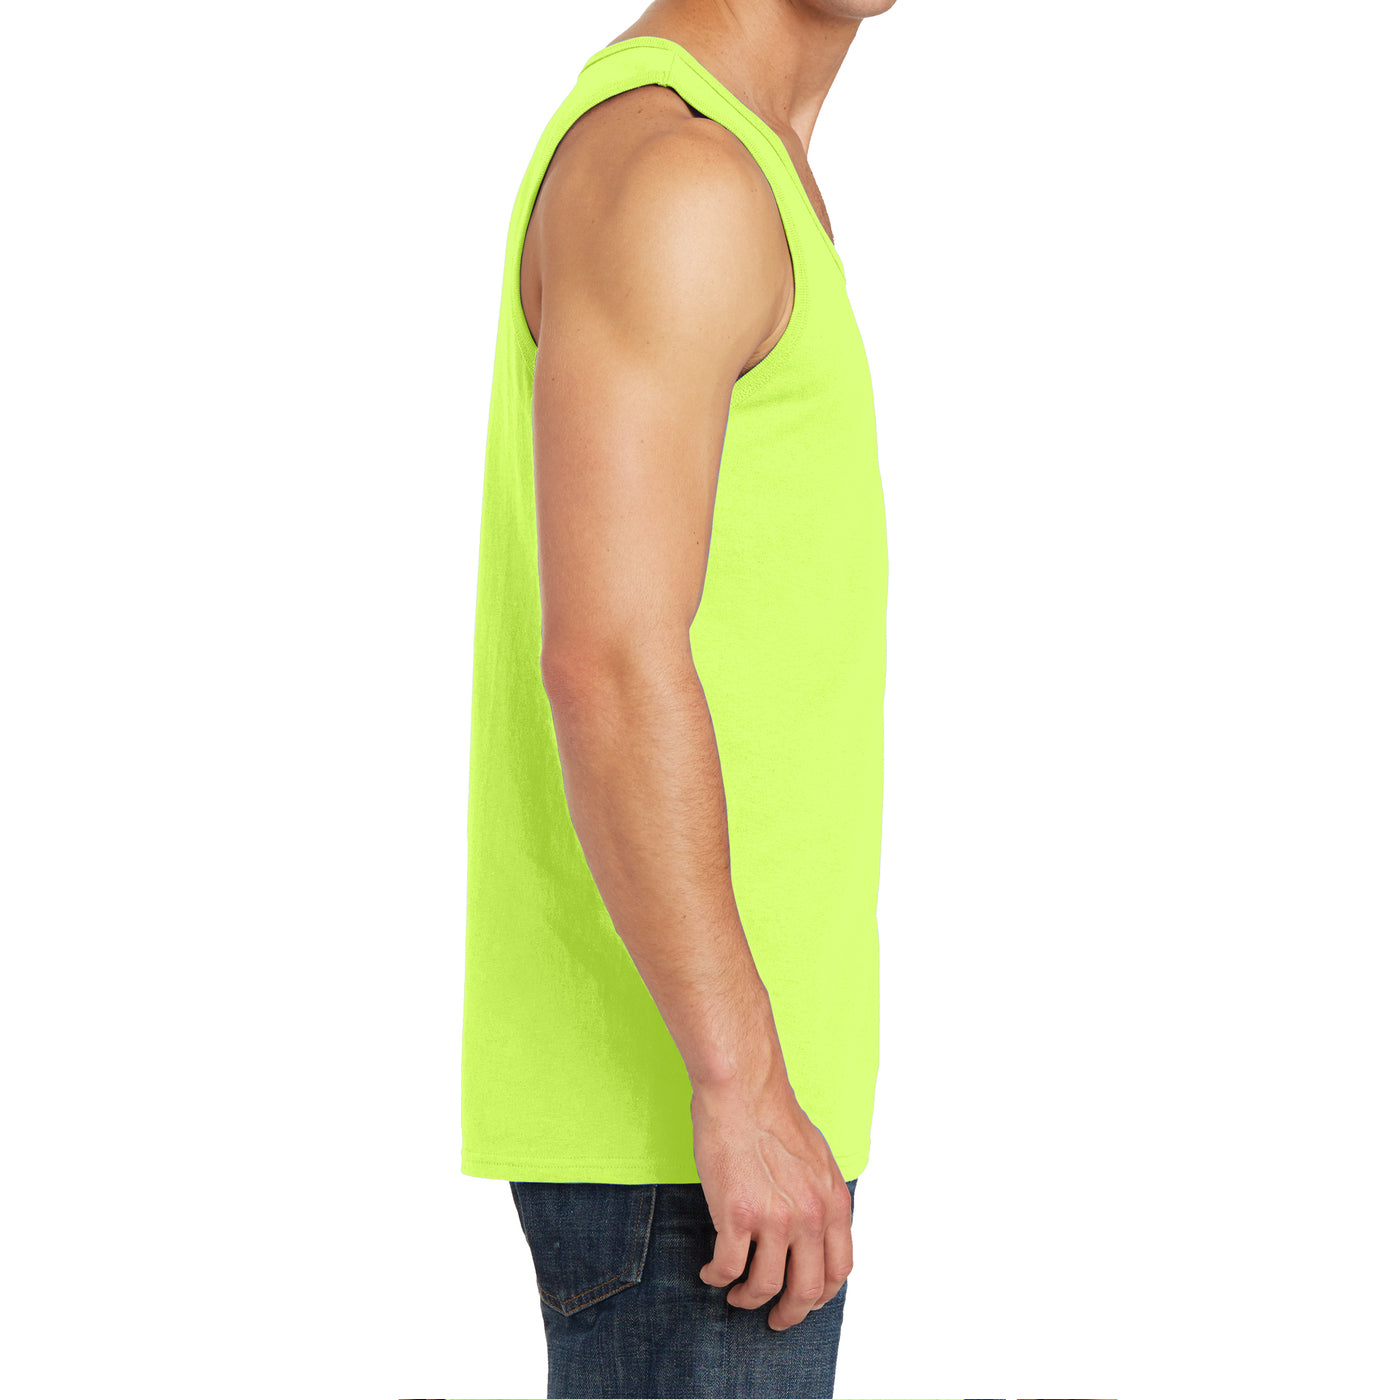 Men's Core Cotton Tank Top - Neon Yellow - Side